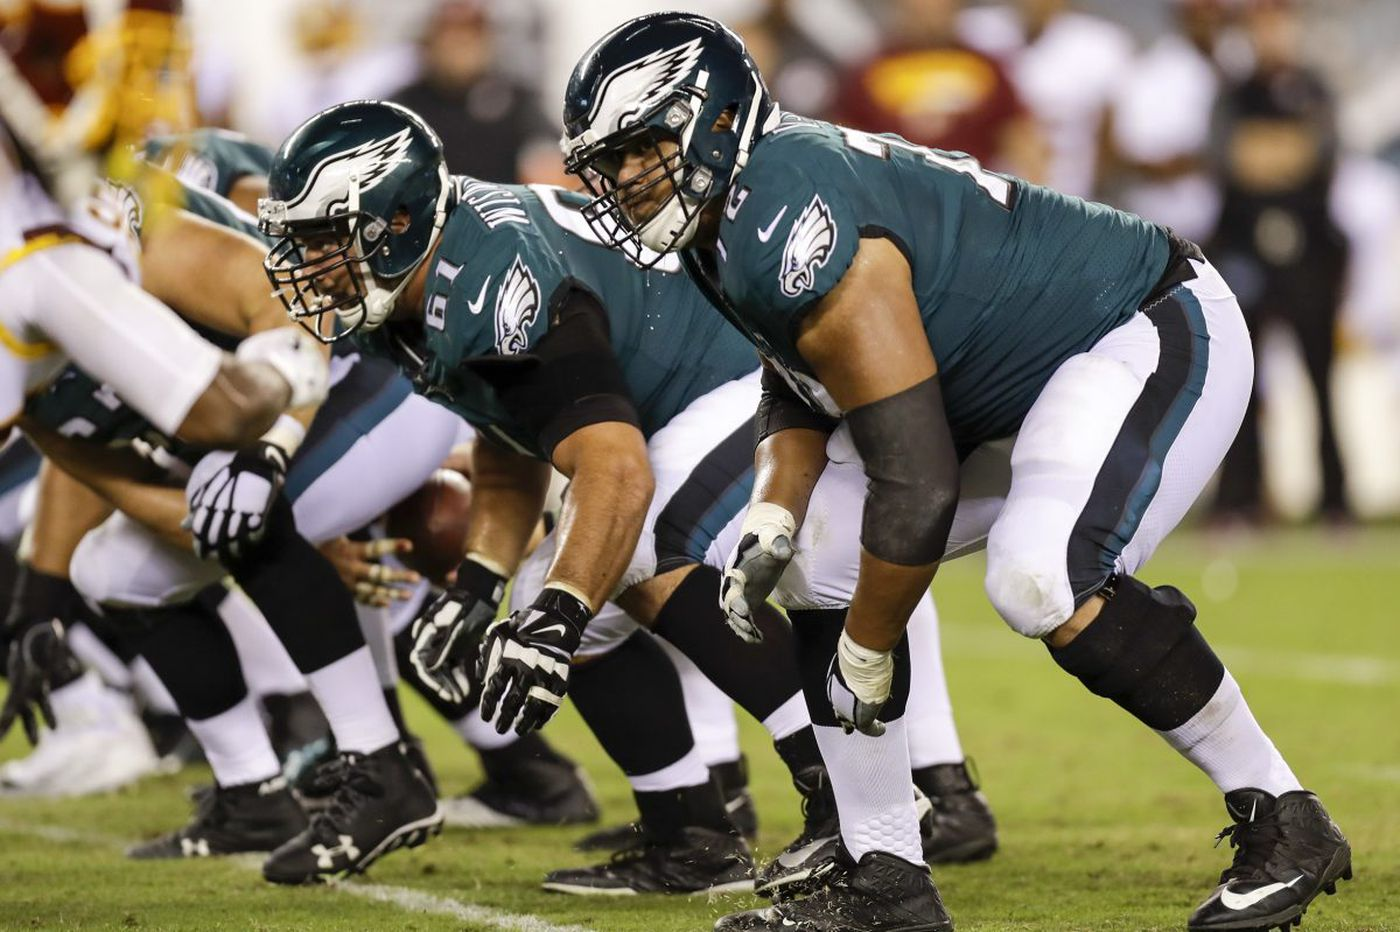 Key to Eagles tackle Halapoulivaati Vaitai's improvement: His hands | Early Birds